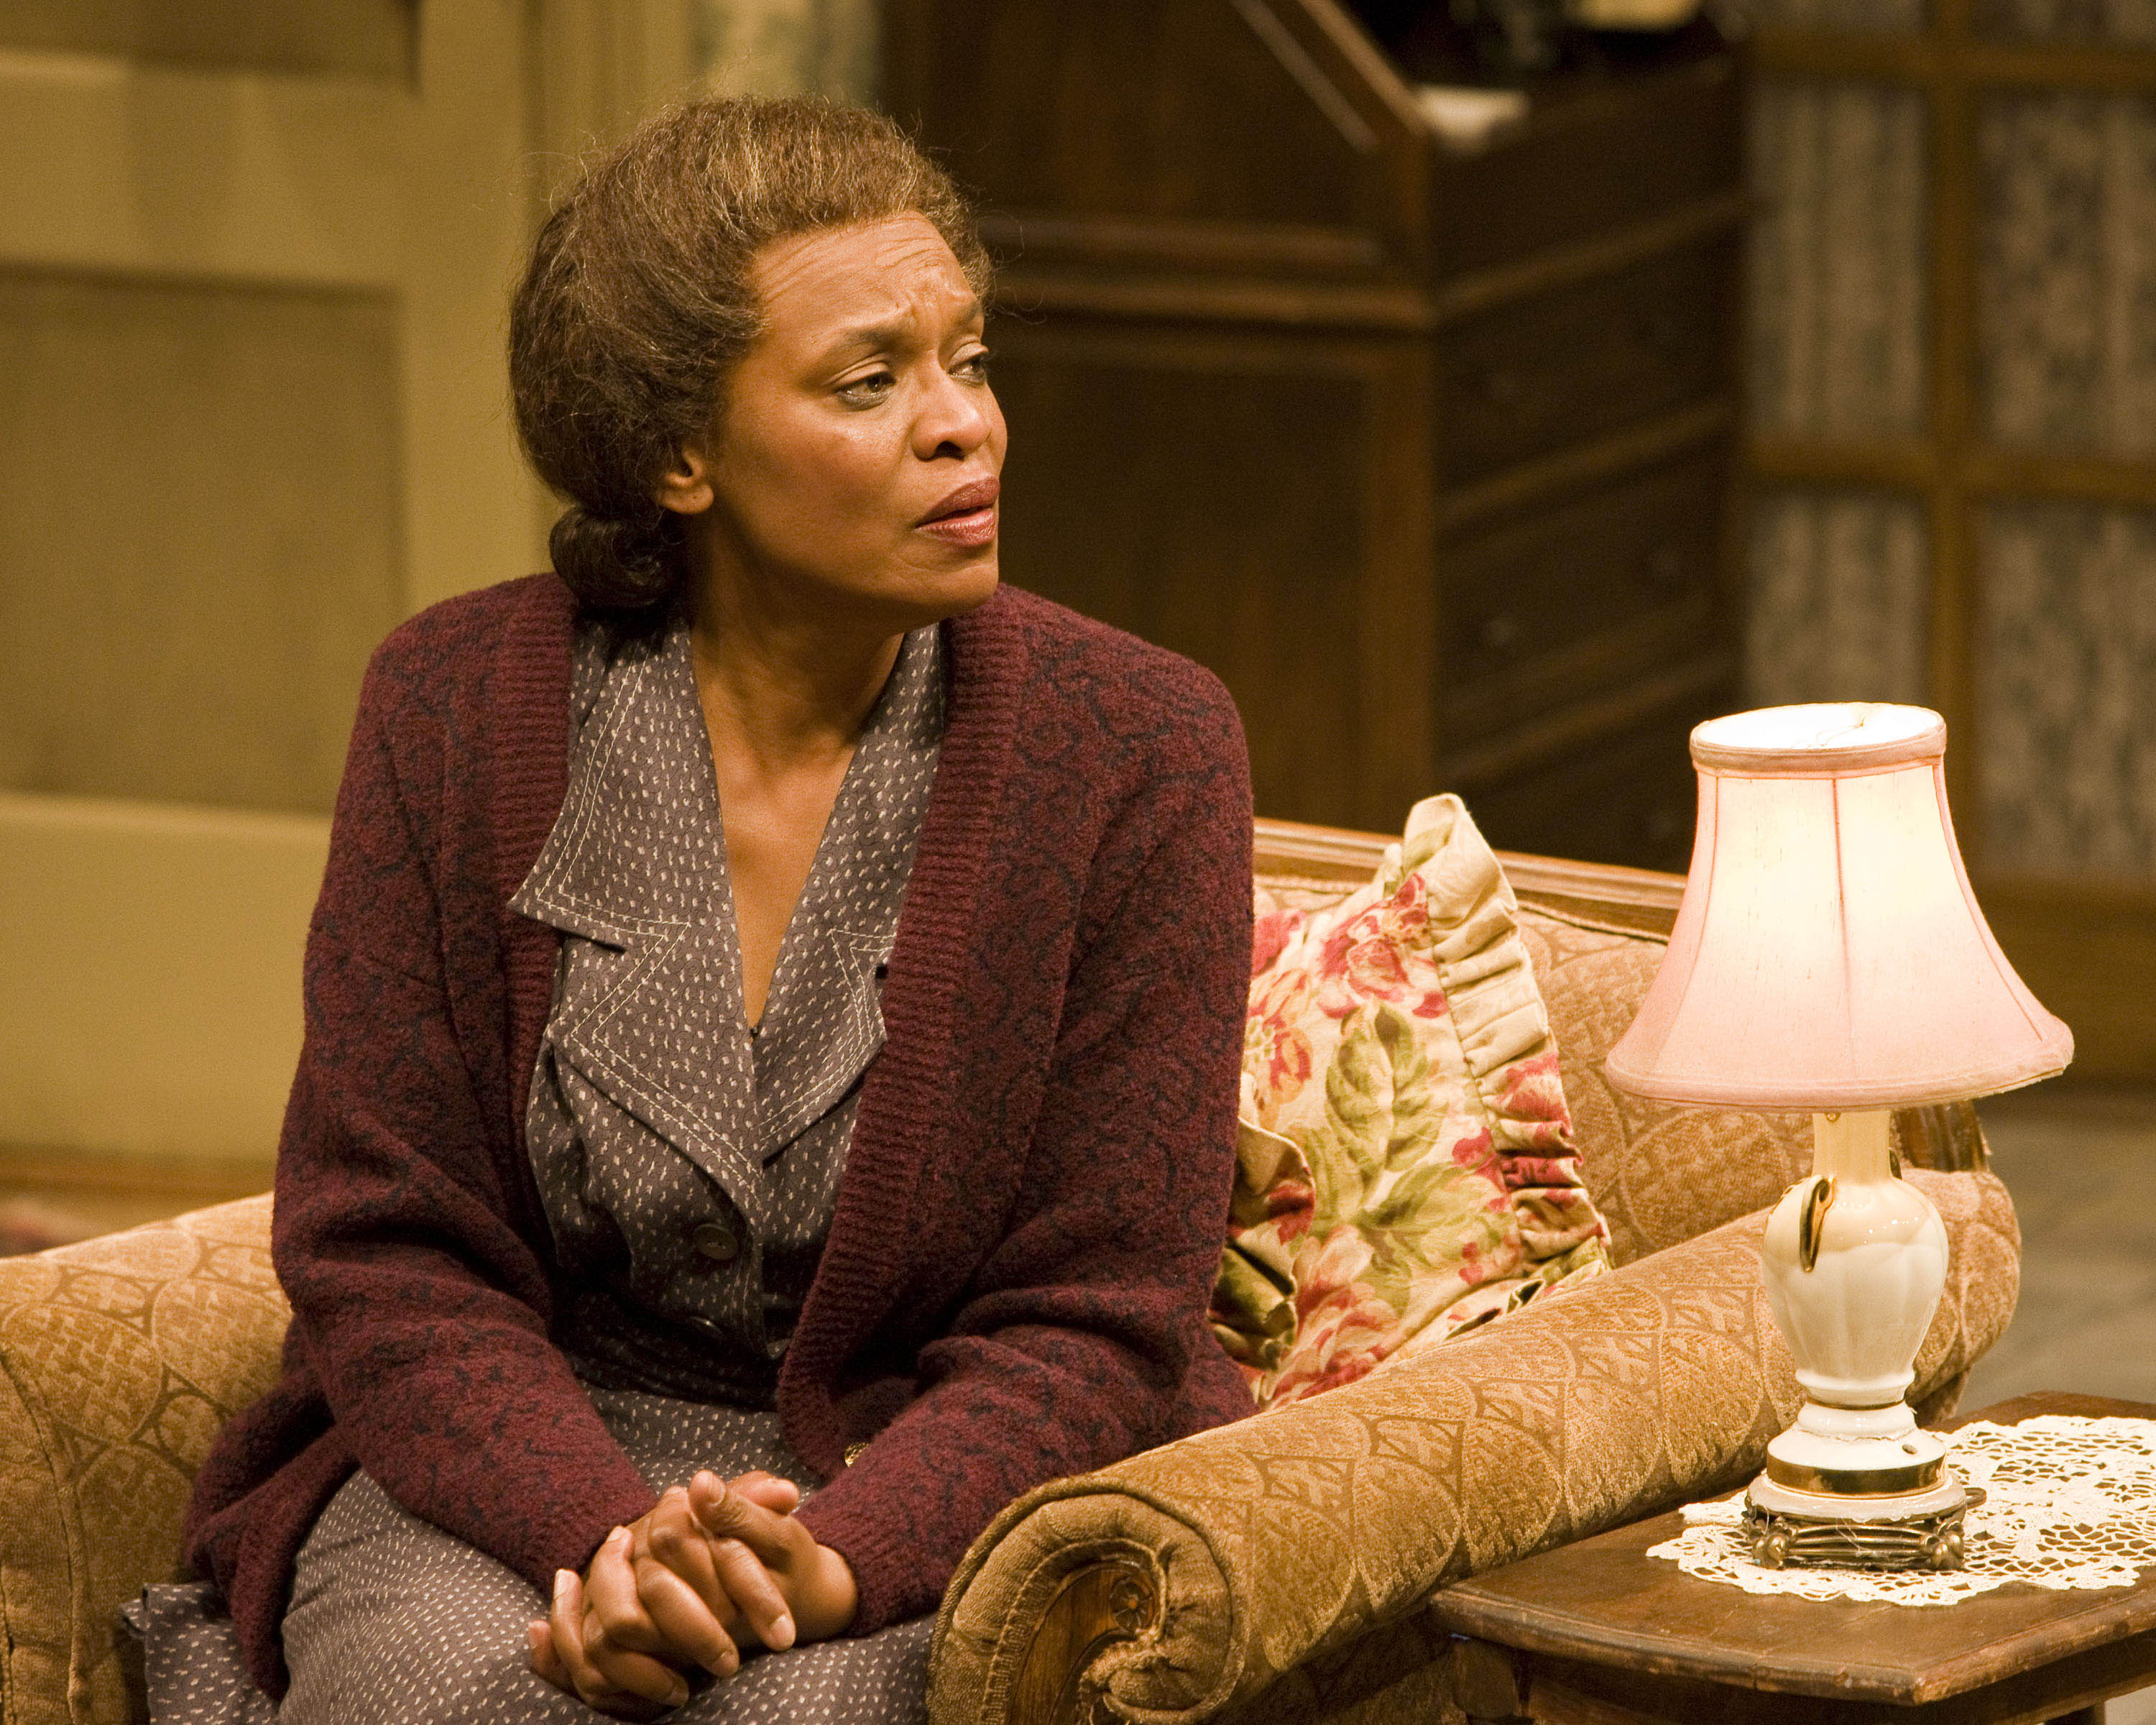 Los angeles theater reviews clybourne park and a raisin in the a raisin in the sun and clybourne park los angeles theater review by harvey perr sciox Images